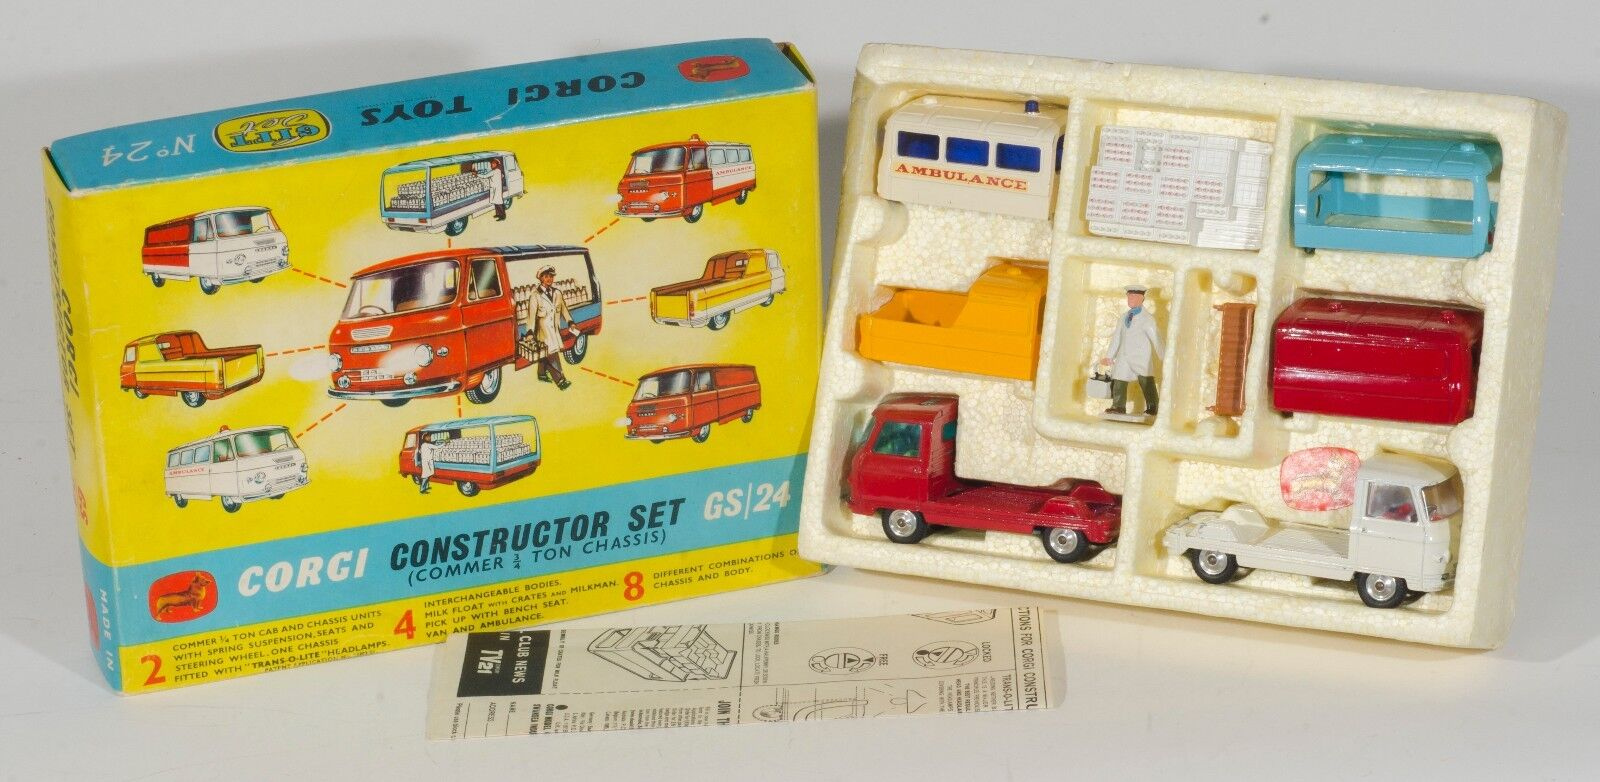 Corgi Gift Set 24 Construction Set (Commer 3 4 Ton Chassis). Boxed. 1960's